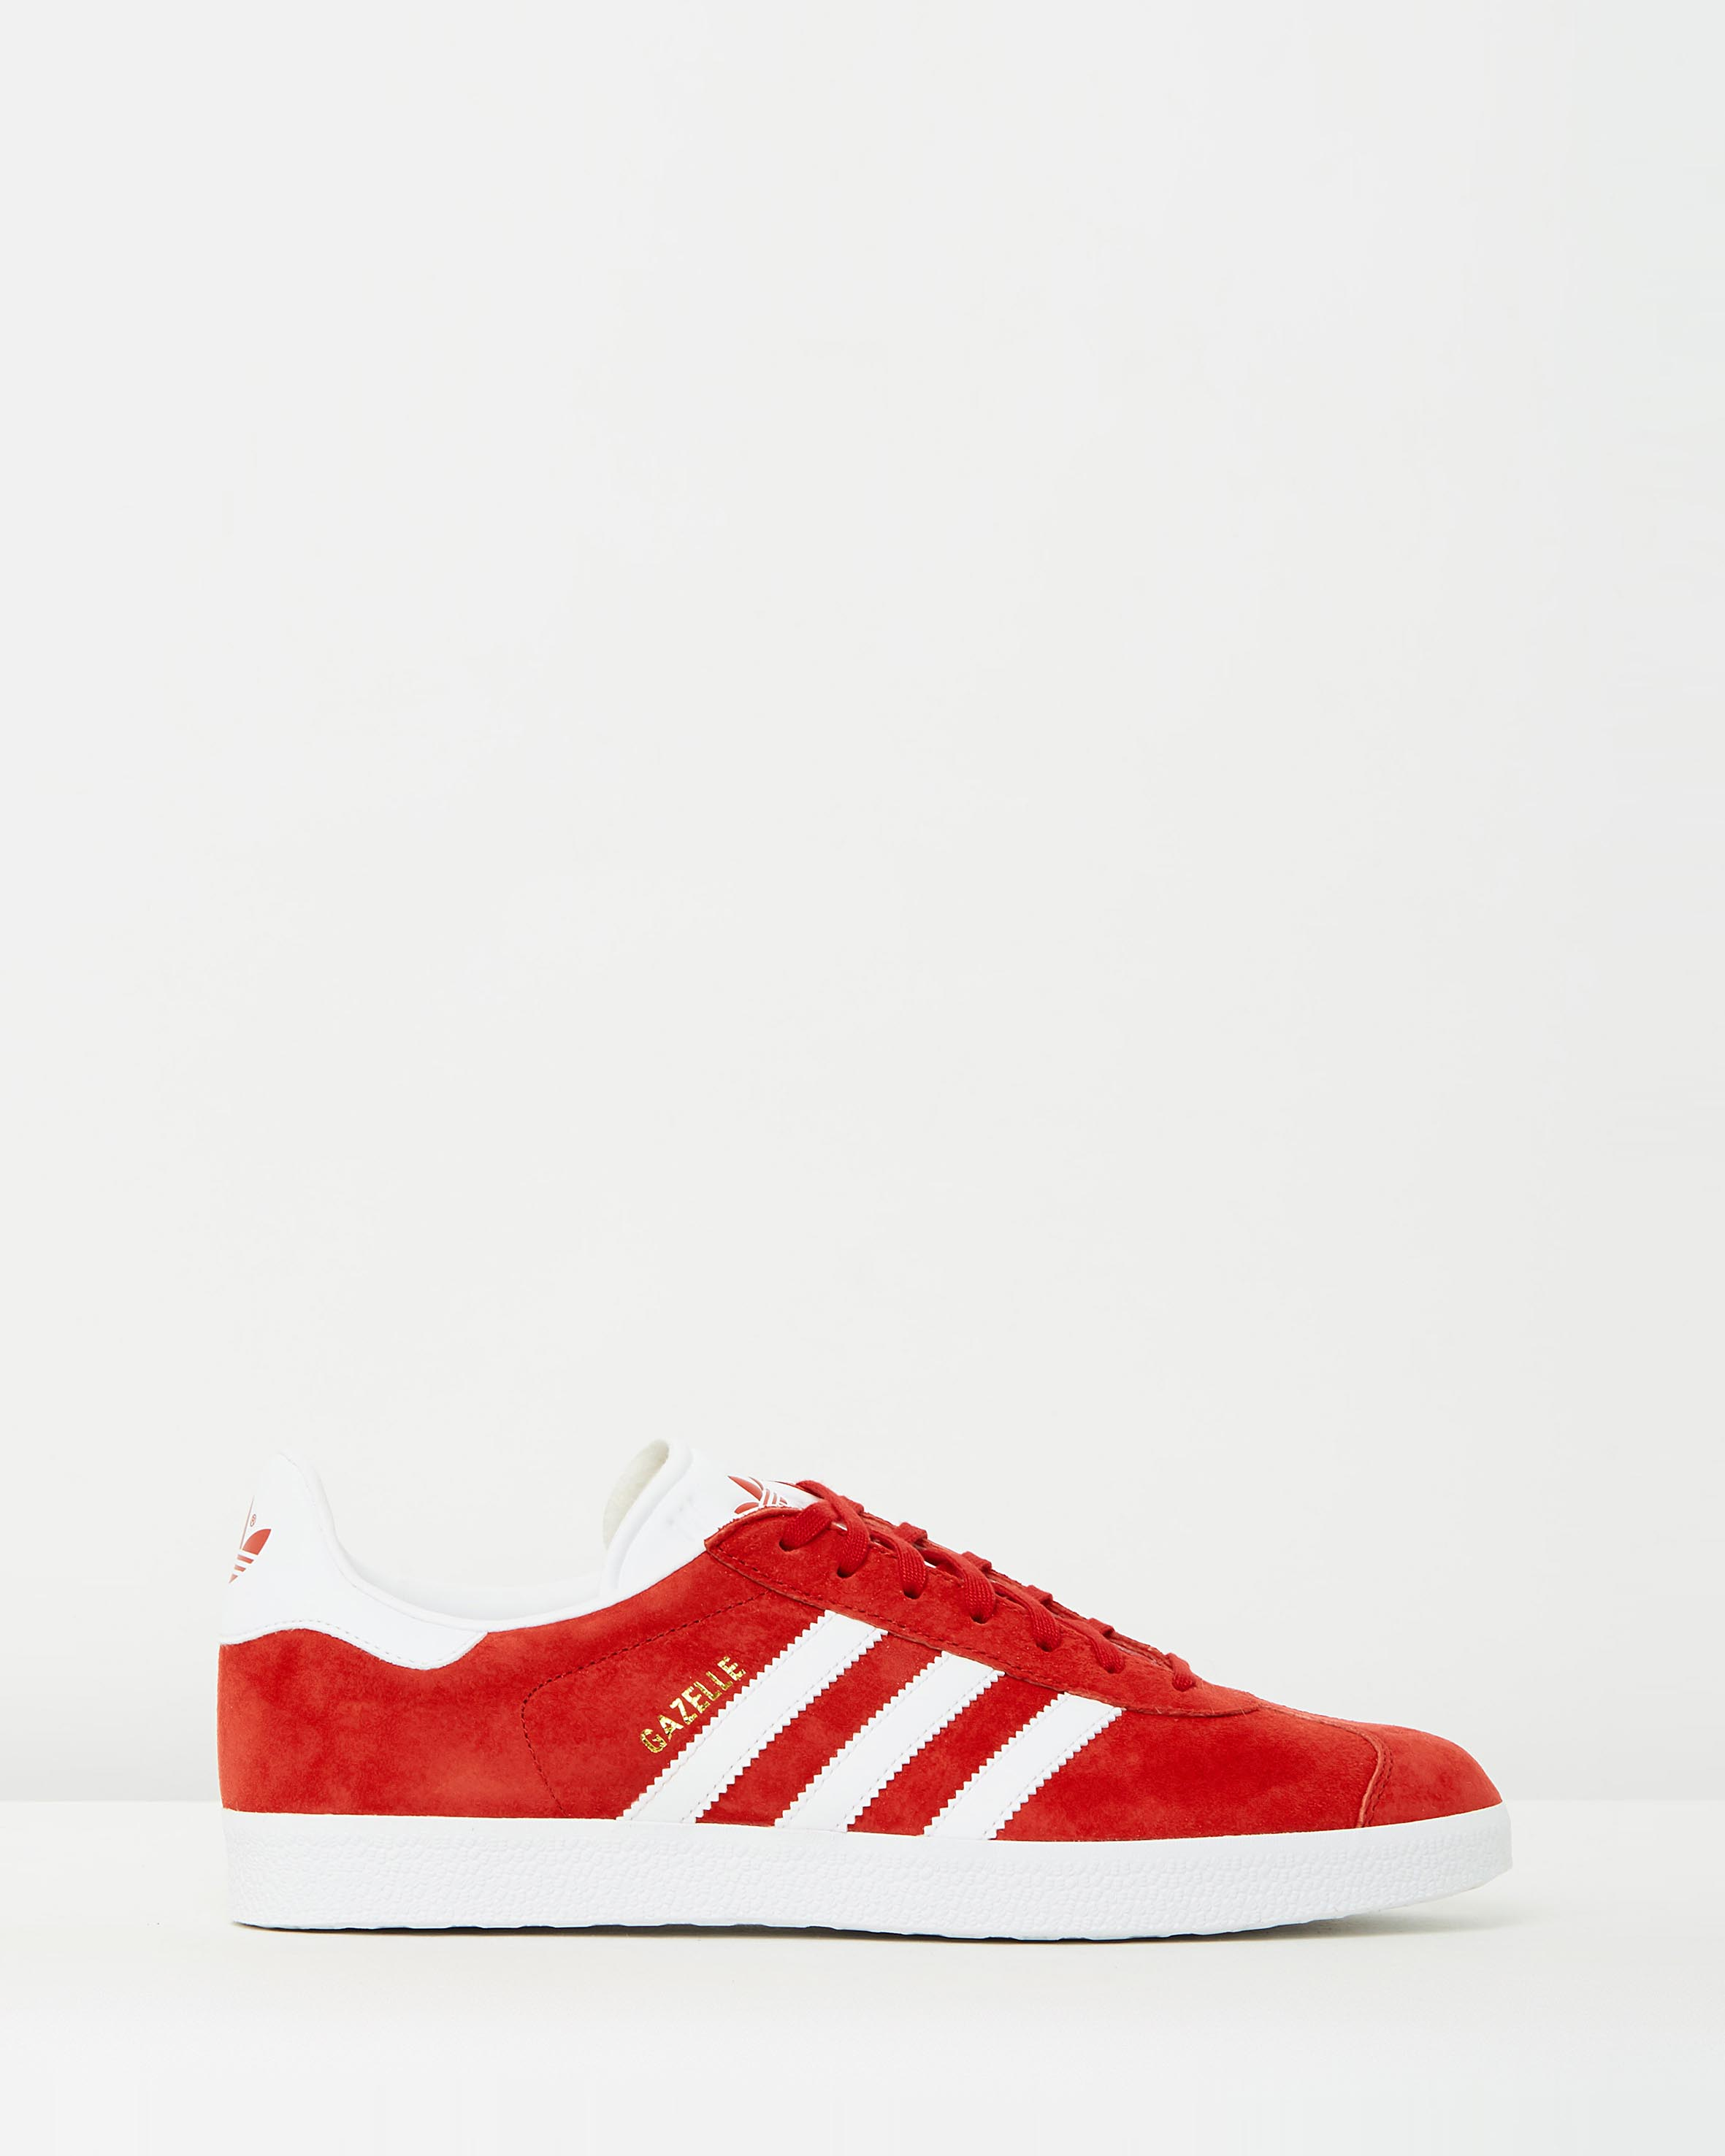 adidas gazelle red shoes adidas shoes men red white blue